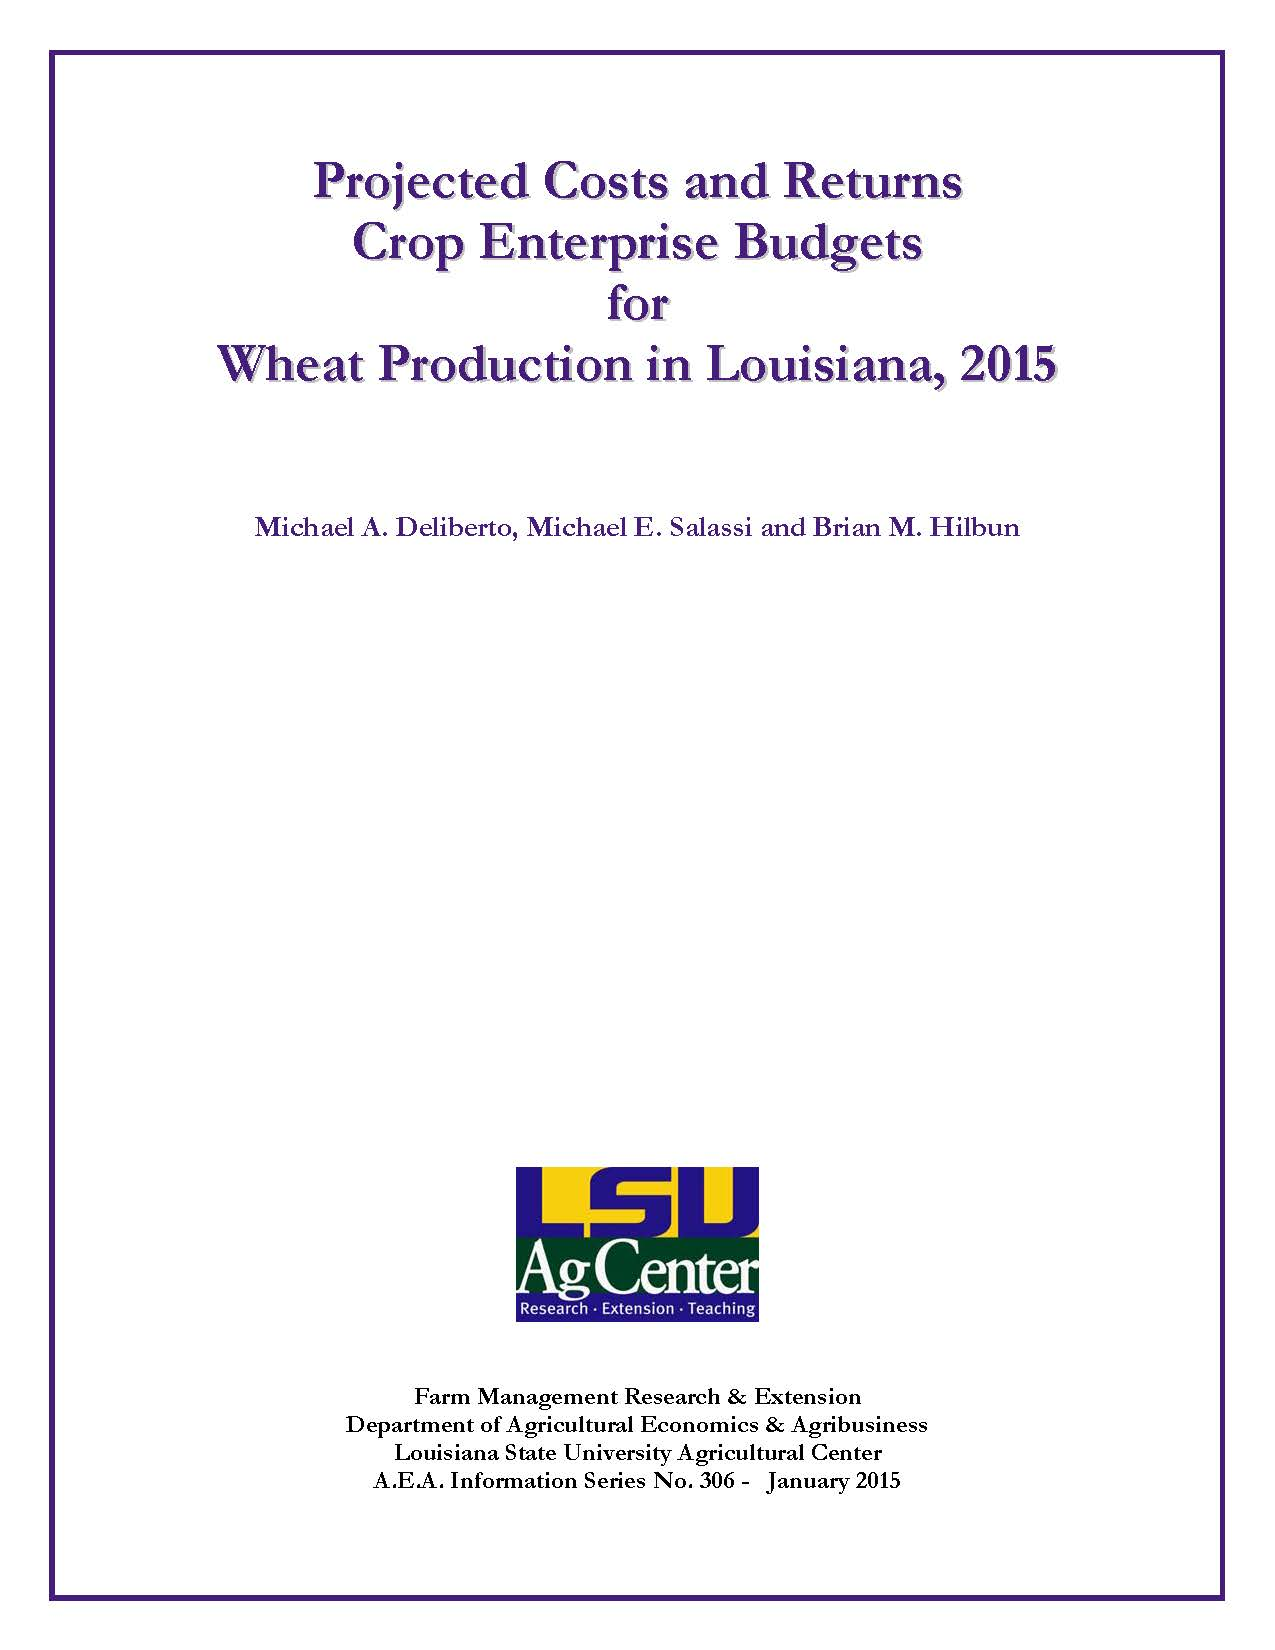 Projected Costs and Returns Budgets for Wheat Production in Louisiana 2015